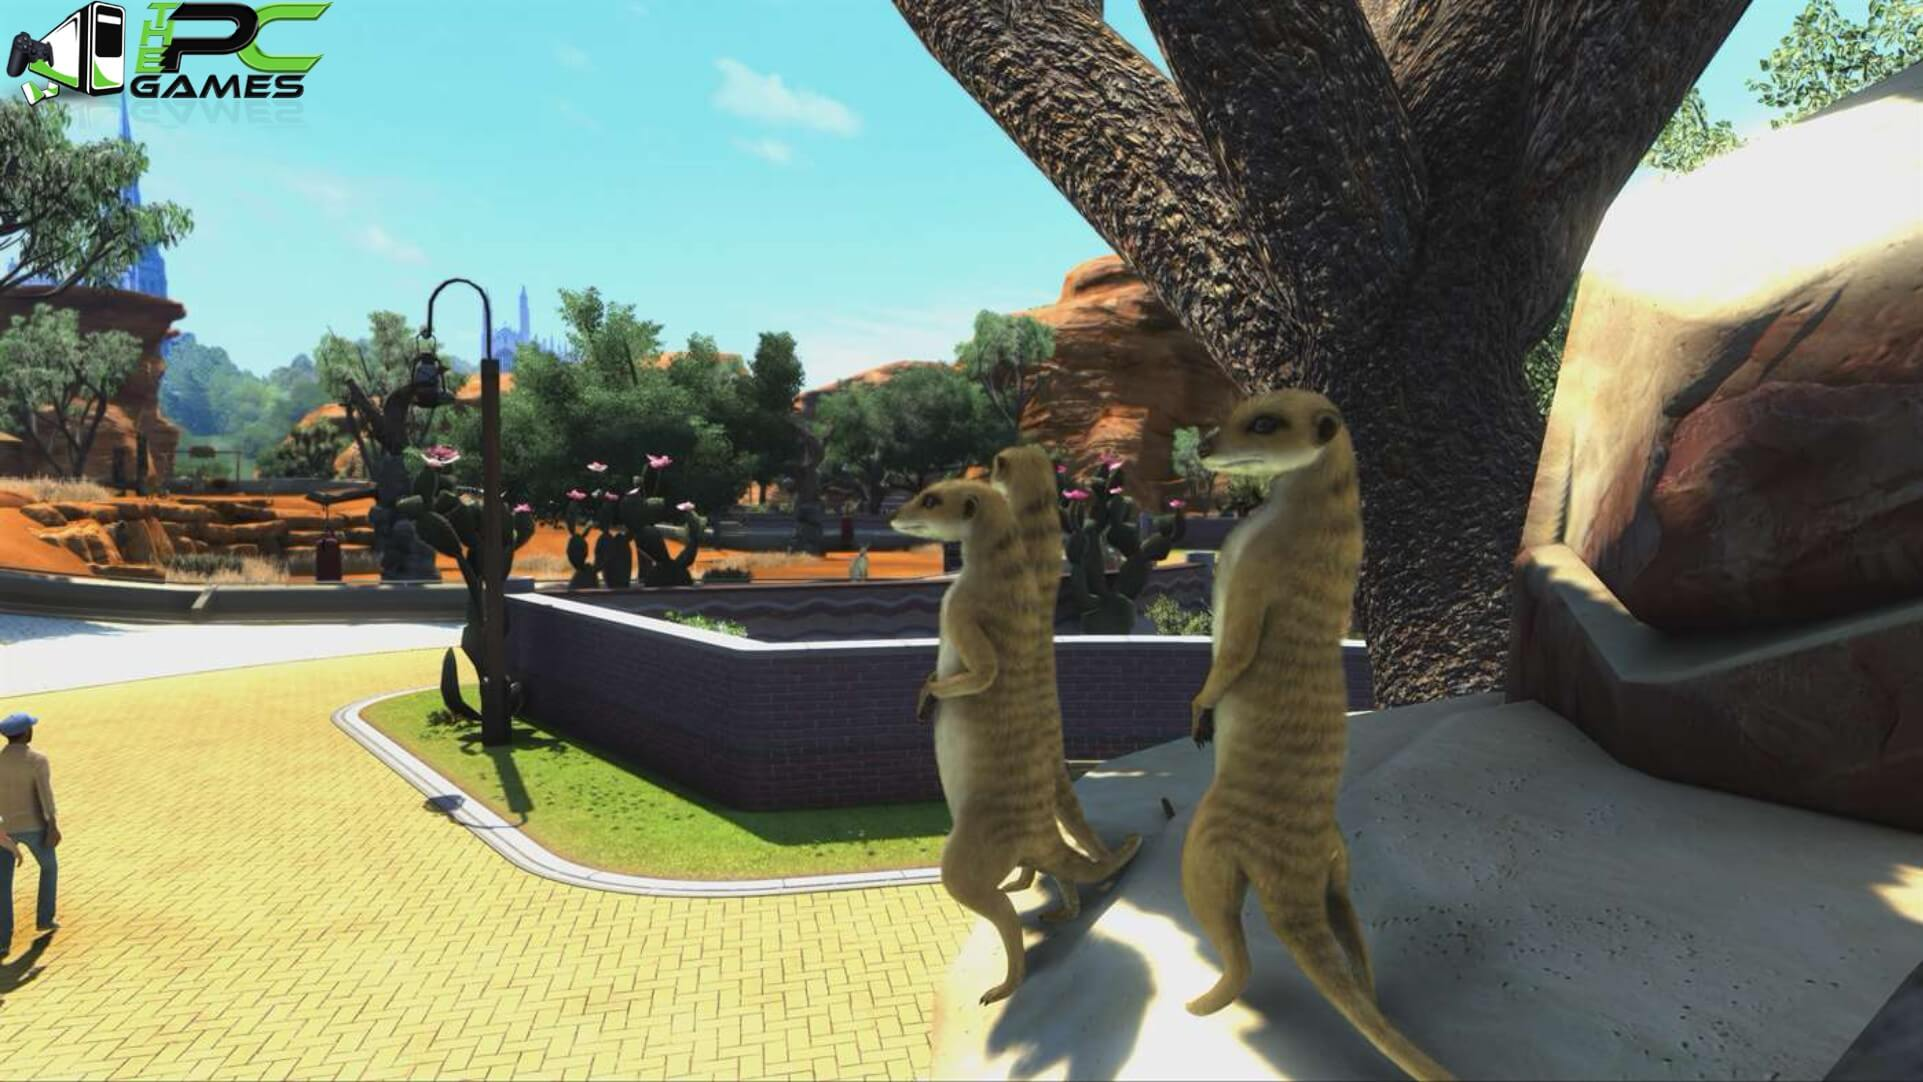 download zoo tycoon 2 full version free complete collection